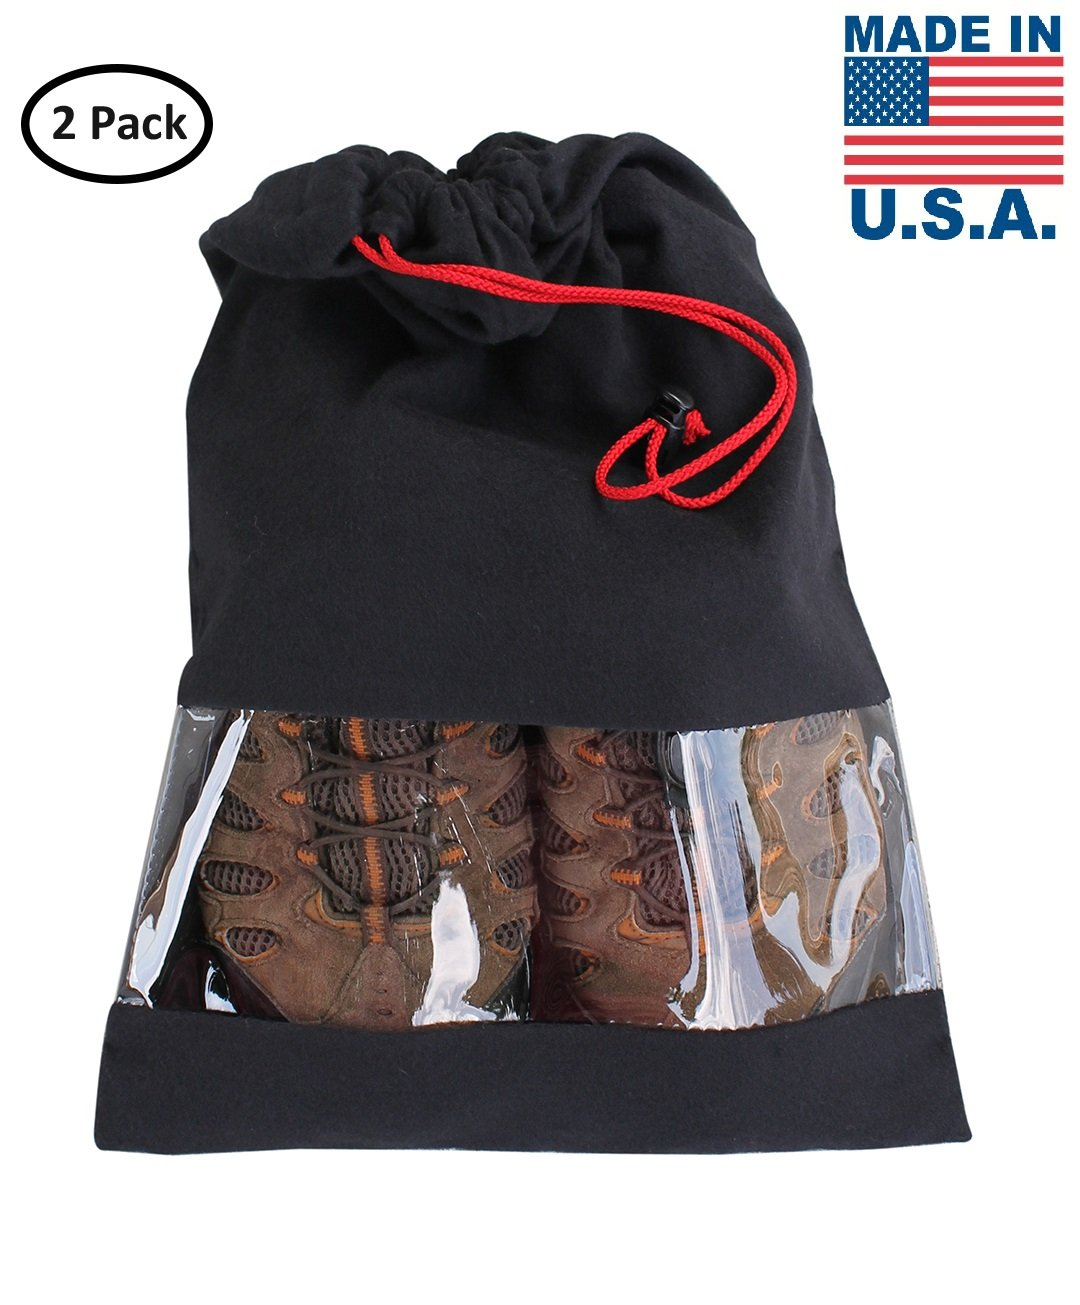 Earthwise Shoe Storage Bags Travel 100% Cotton with Drawstring & Clear Window Made in the USA (Set of 2) …